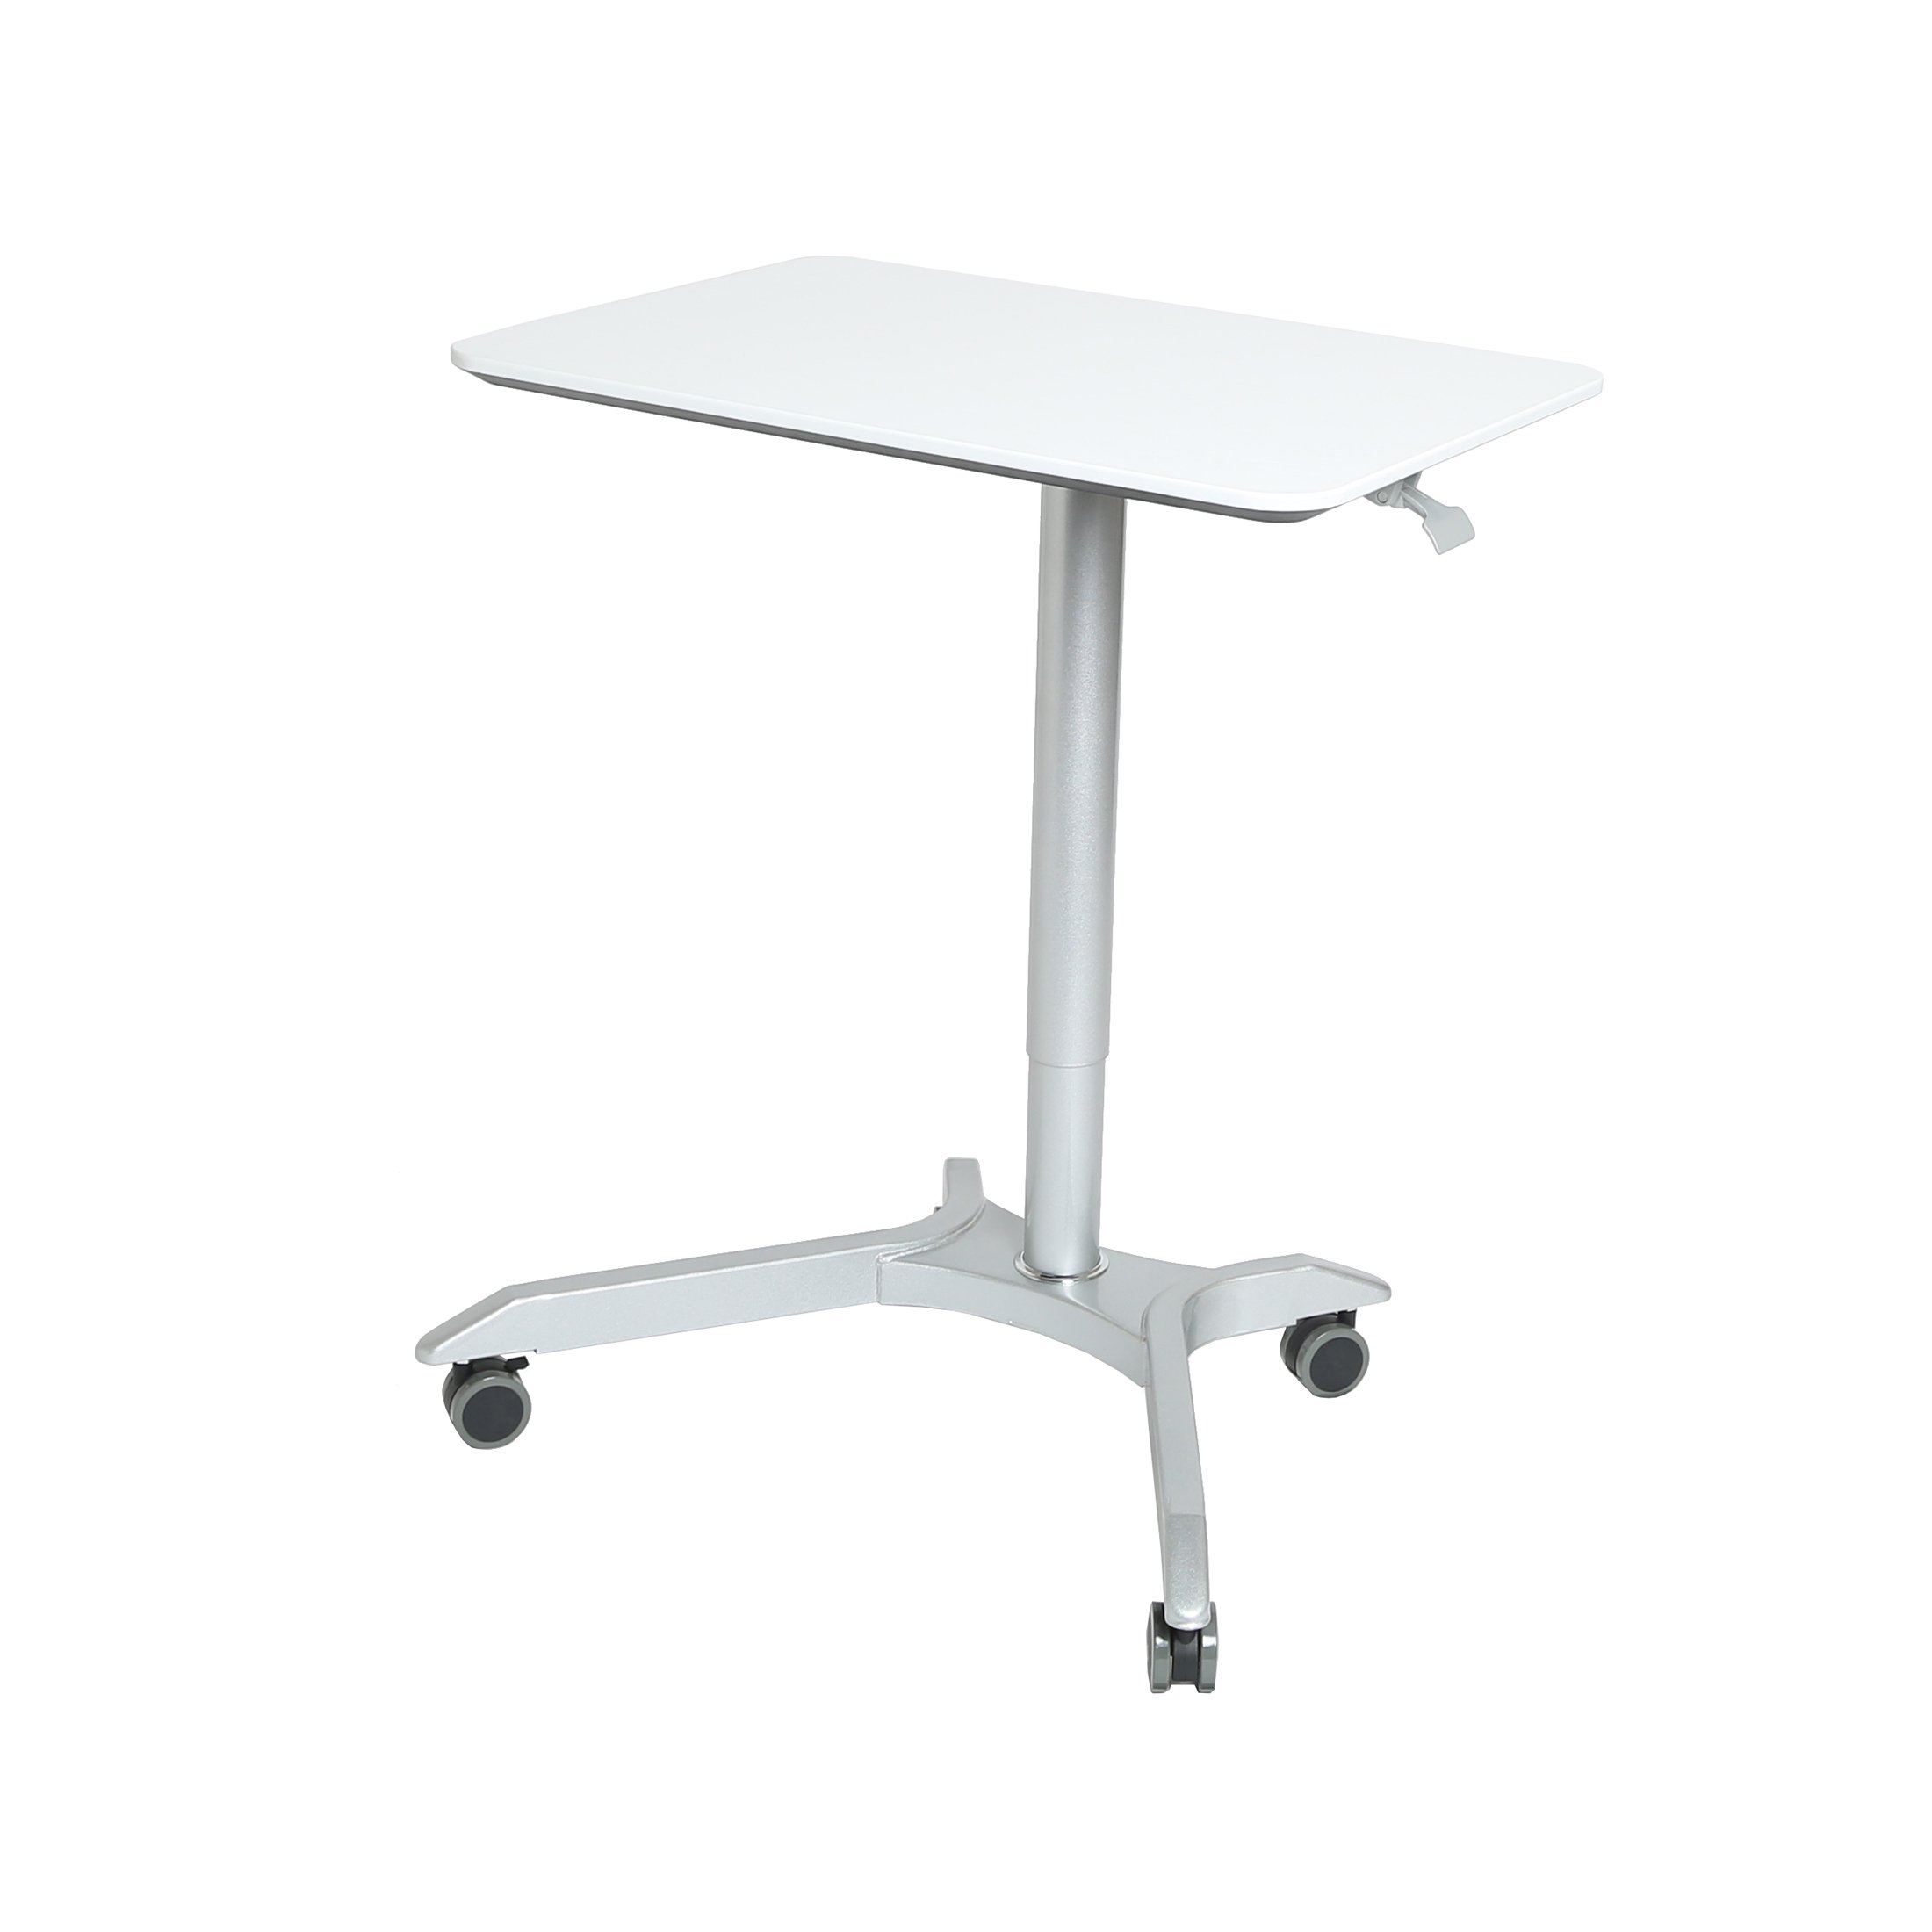 Seville Classics AIRLIFT XL Pneumatic Sit-Stand Mobile Desk Cart, Height-Adjustable from 27.1 to 41.9, White